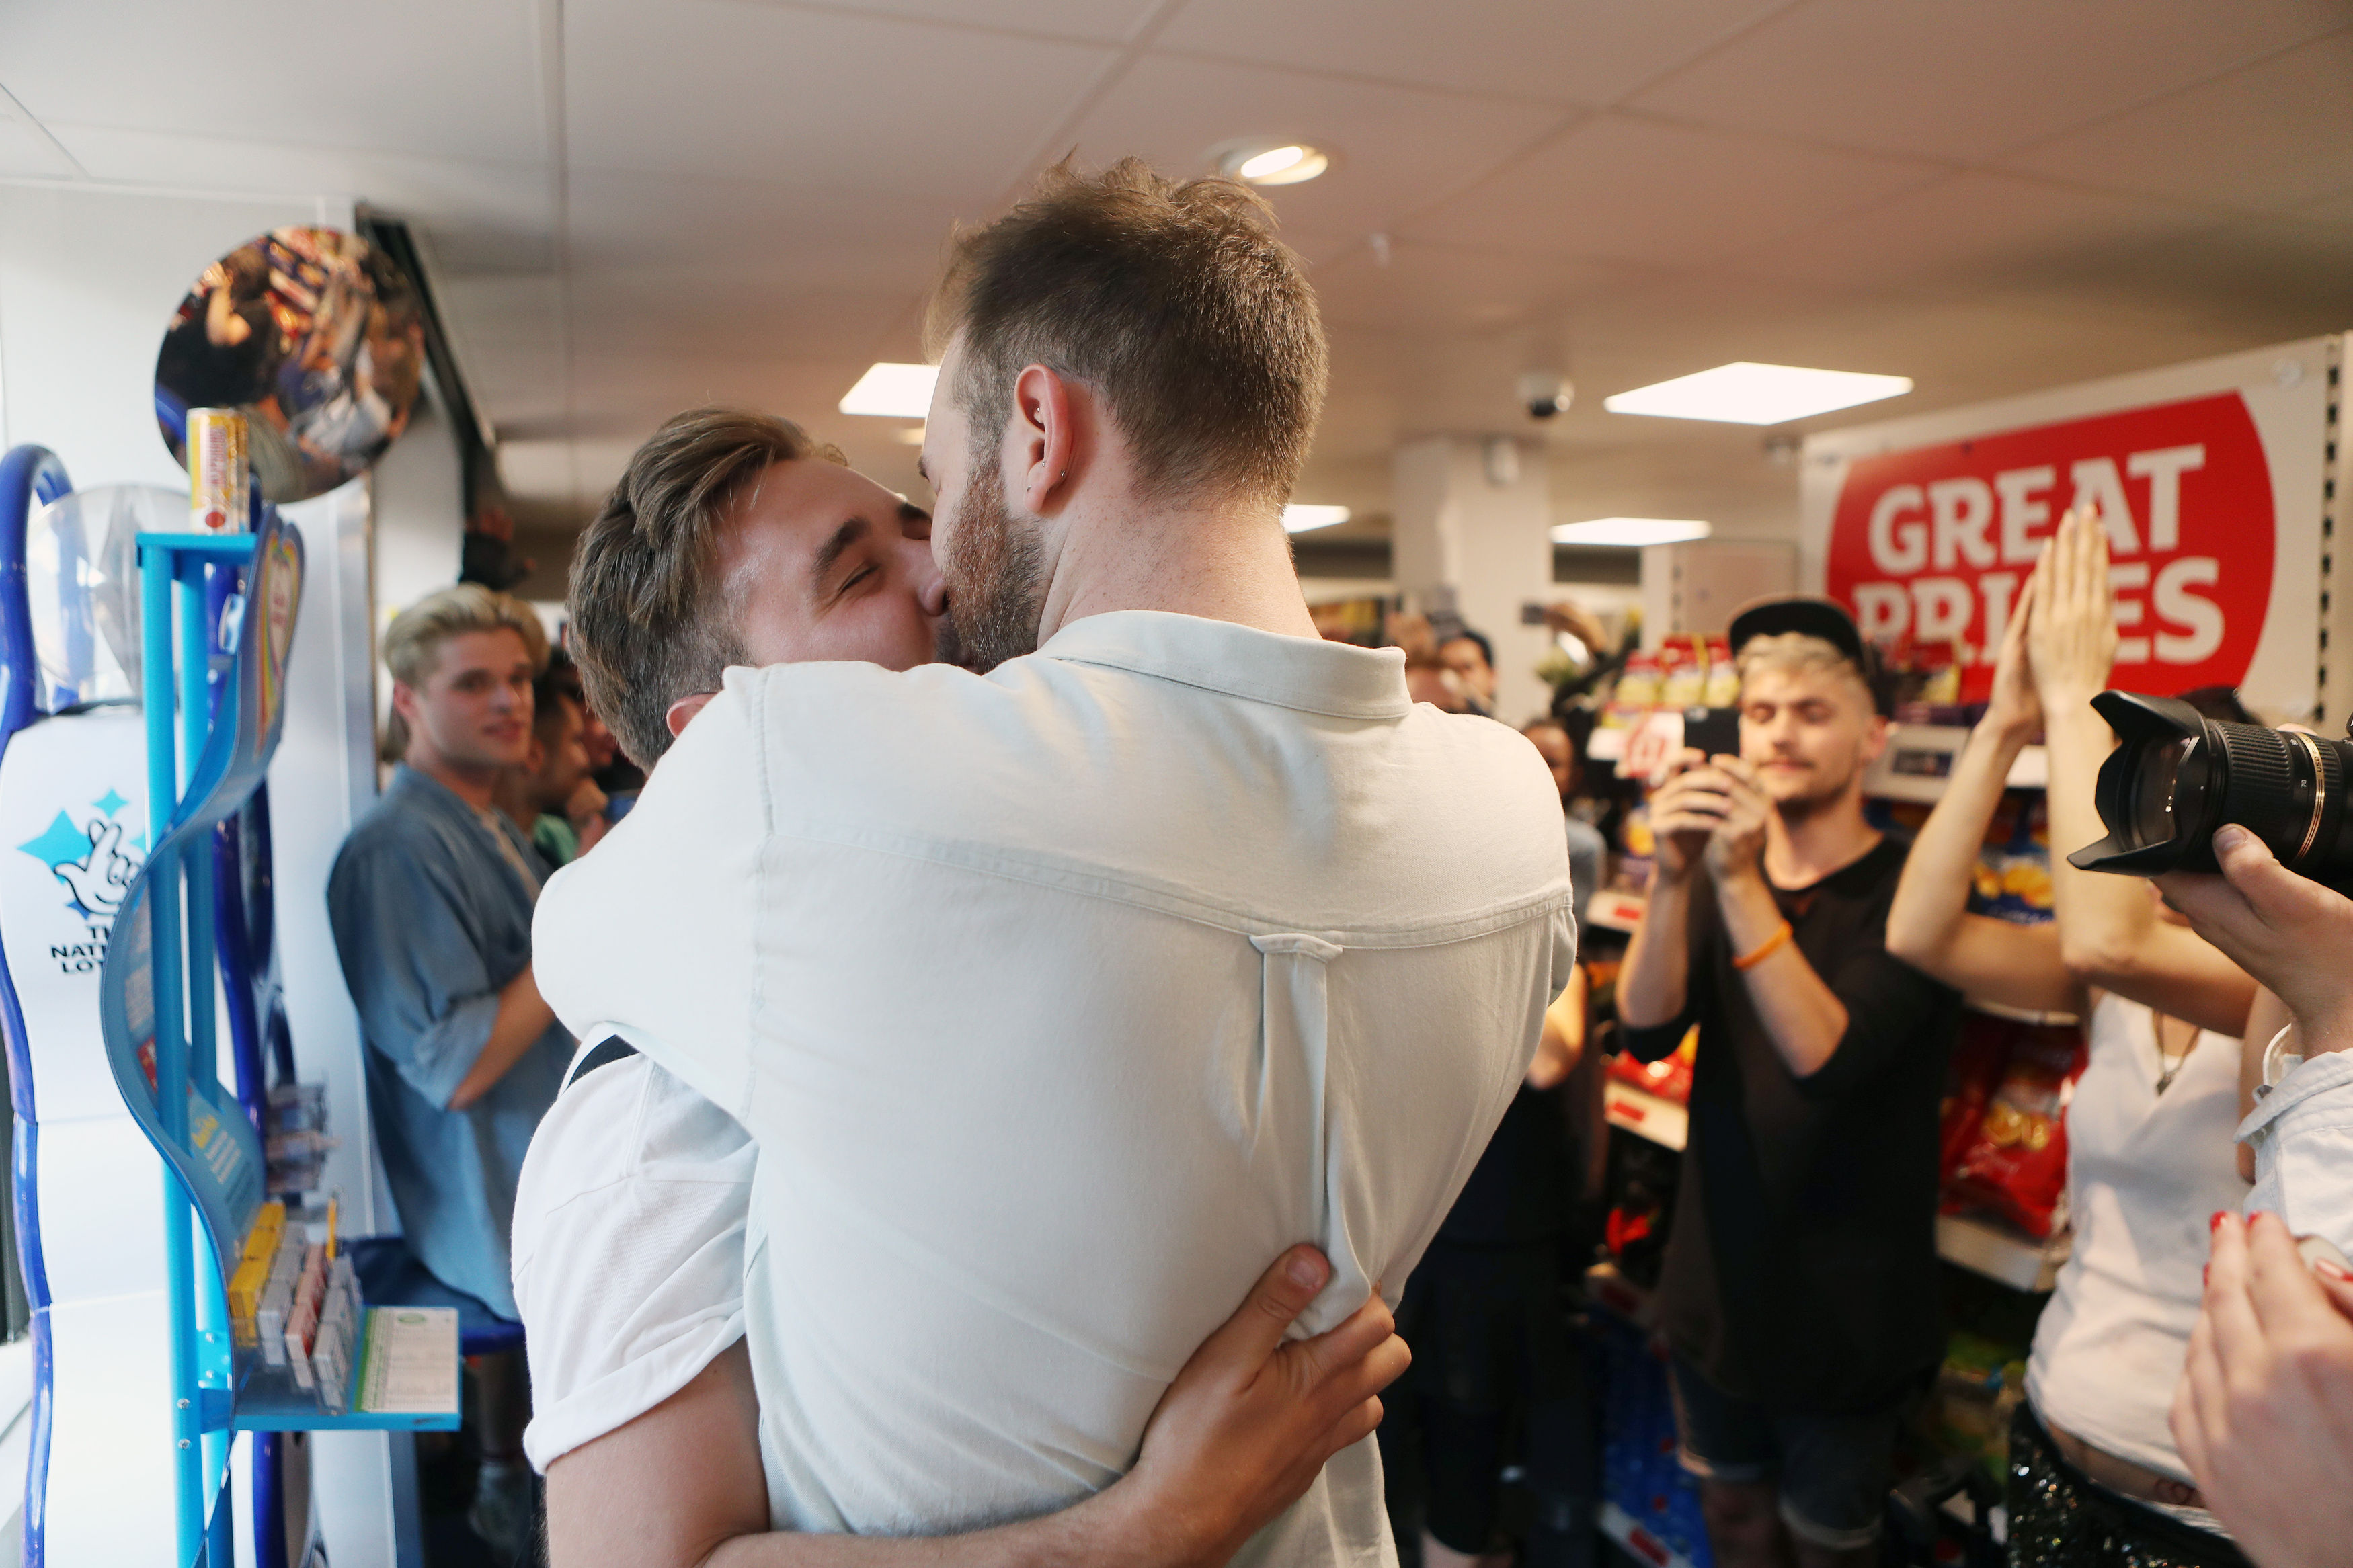 PA 28351447 Hundreds Stage Kiss In Protest After Gay Couple Kicked Out Of Sainsbury's